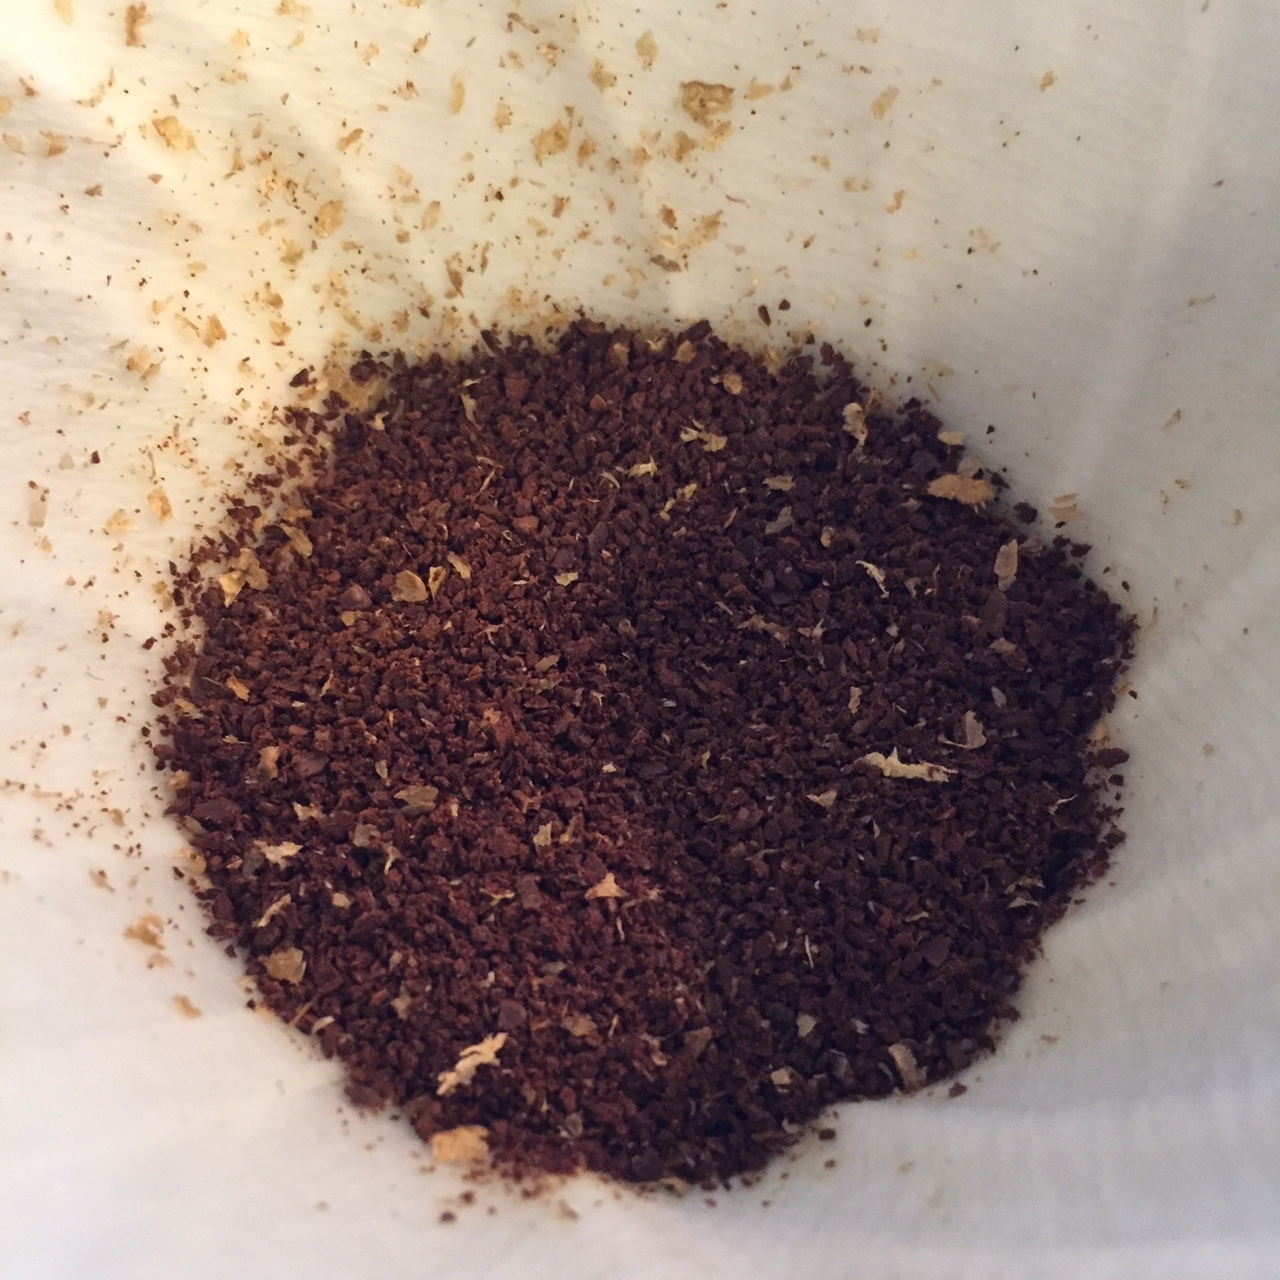 Lots of chaff from this washed coffee.